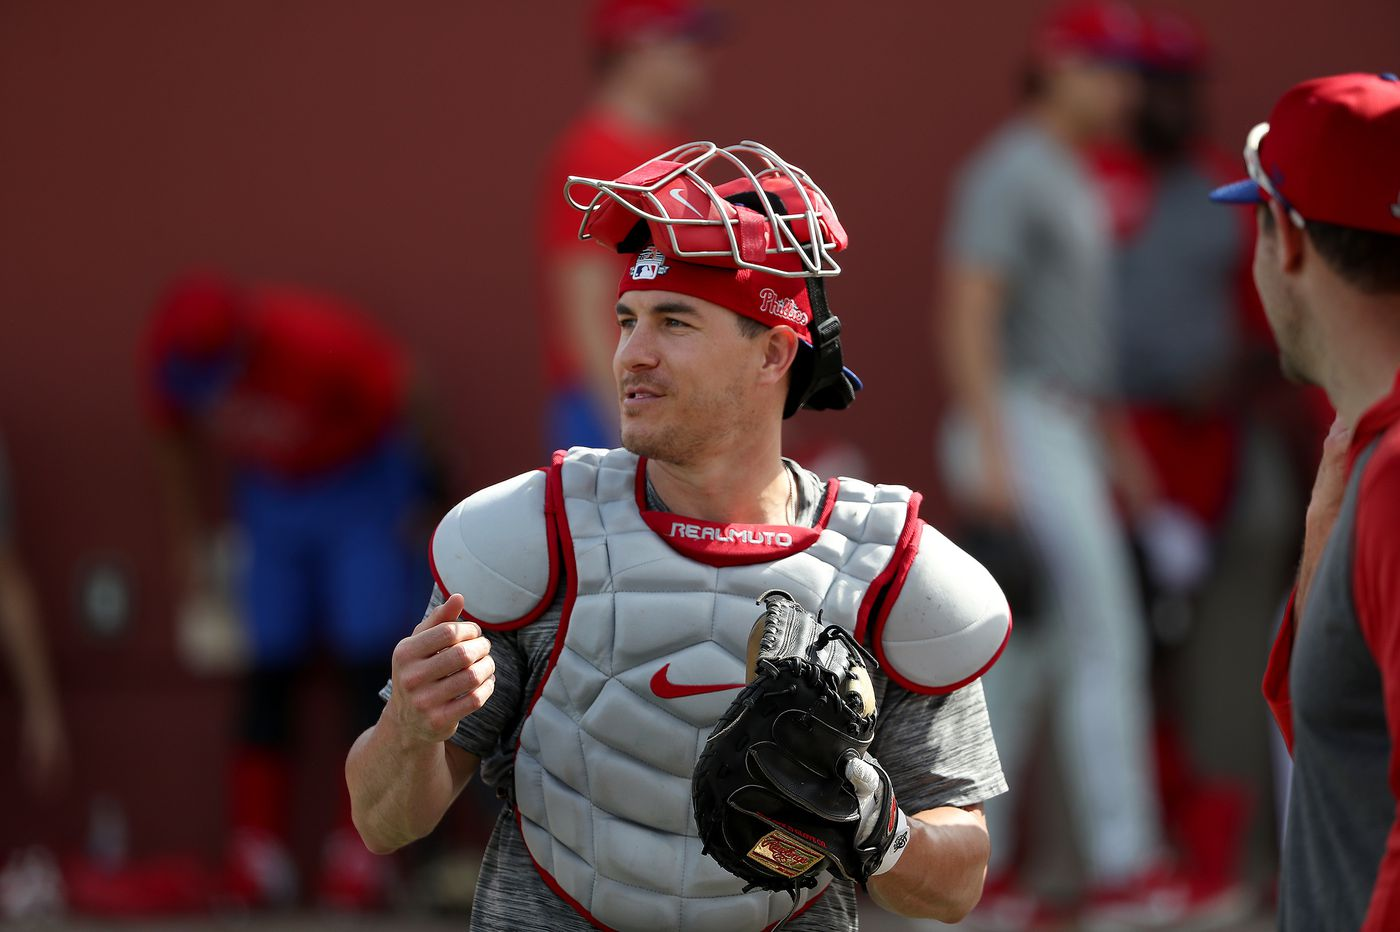 Phillies defeat J.T. Realmuto in arbitration hearing, source says